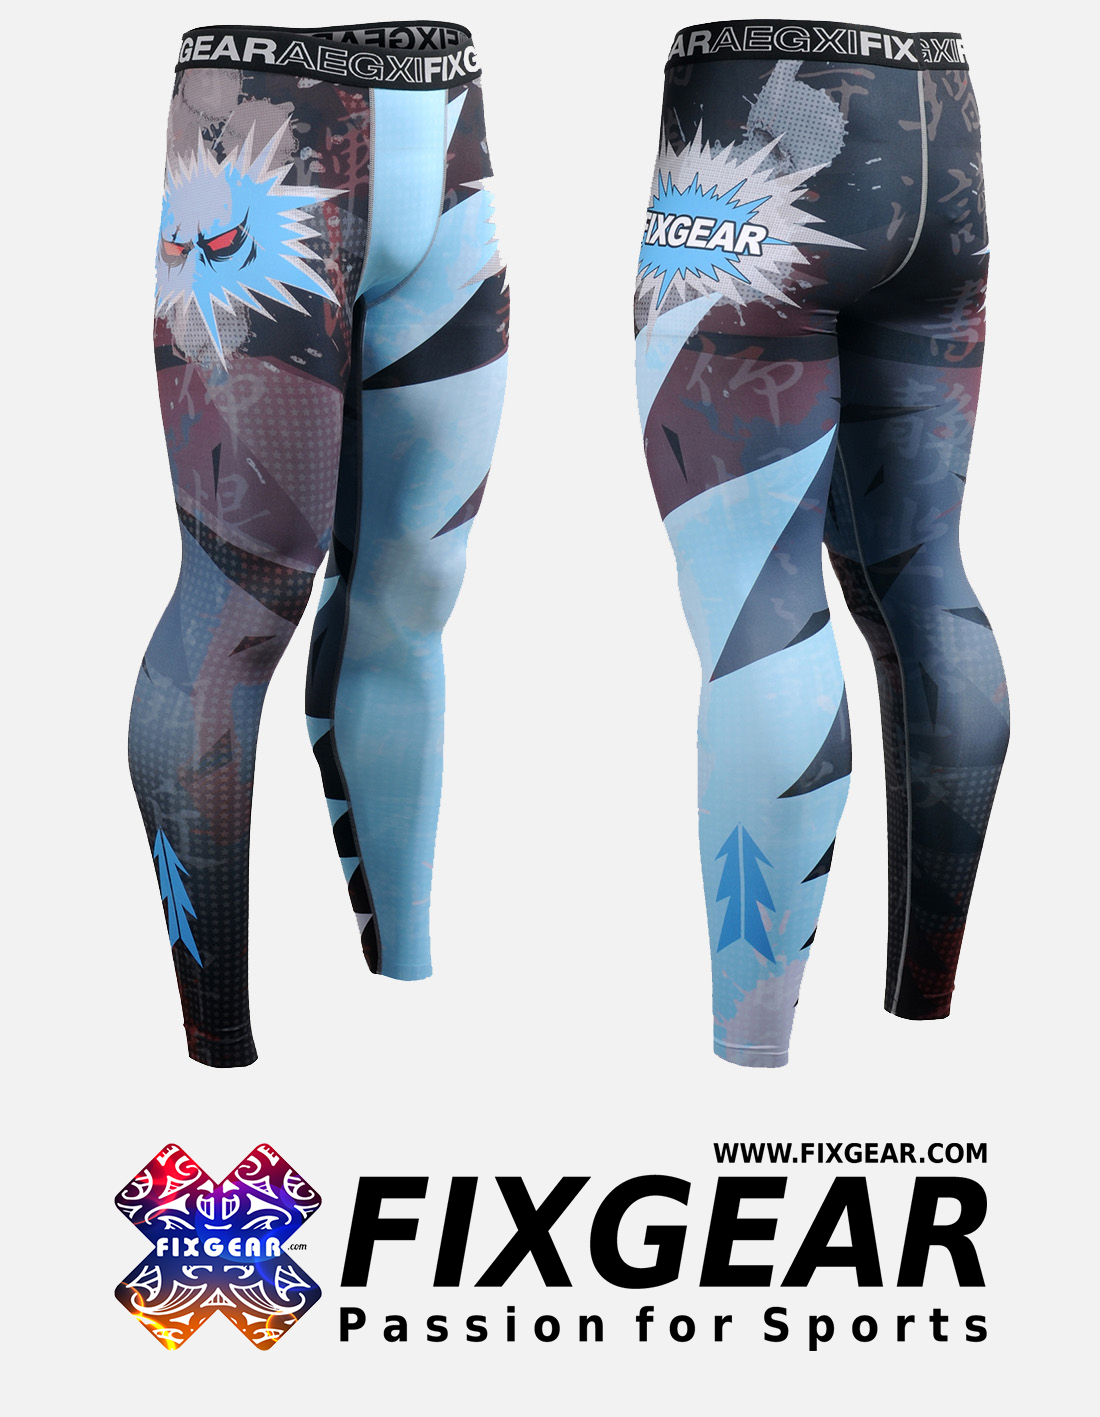 FIXGEAR FPL-78 Compression Leggings Under Training Tights Base layer Pants MMA